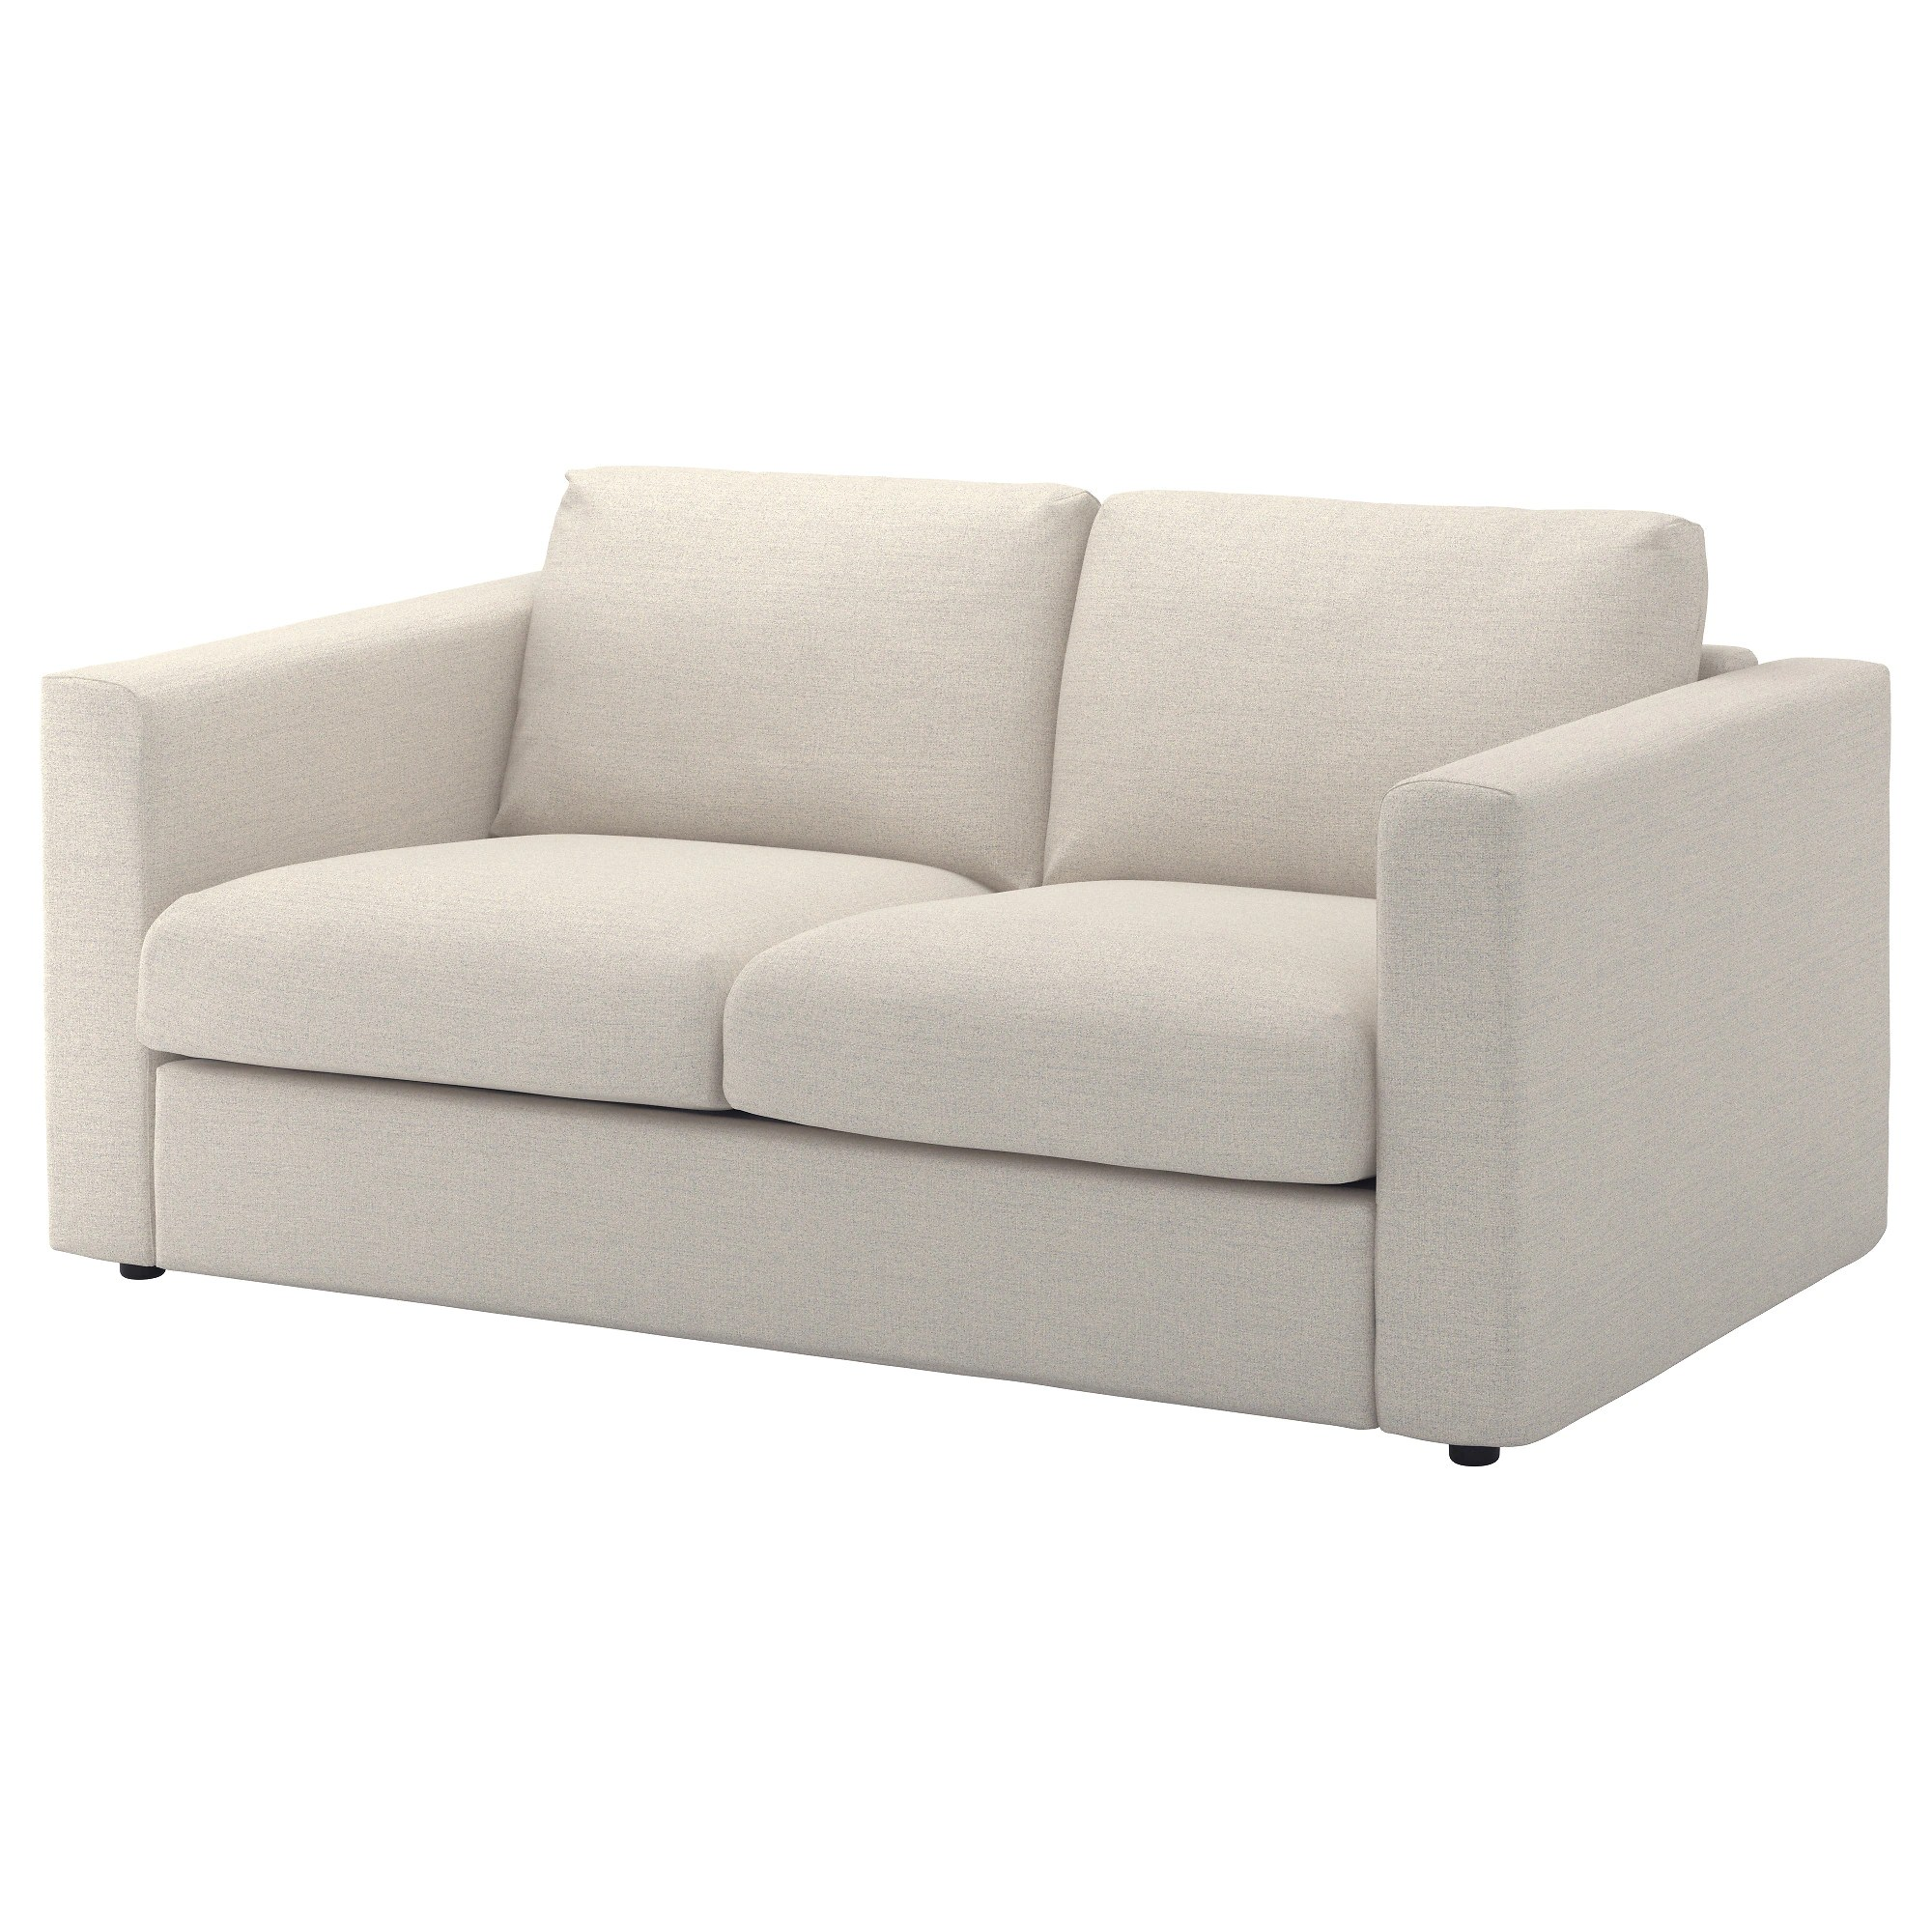 Loveseat Ikea Vimle Loveseat Gunnared Beige